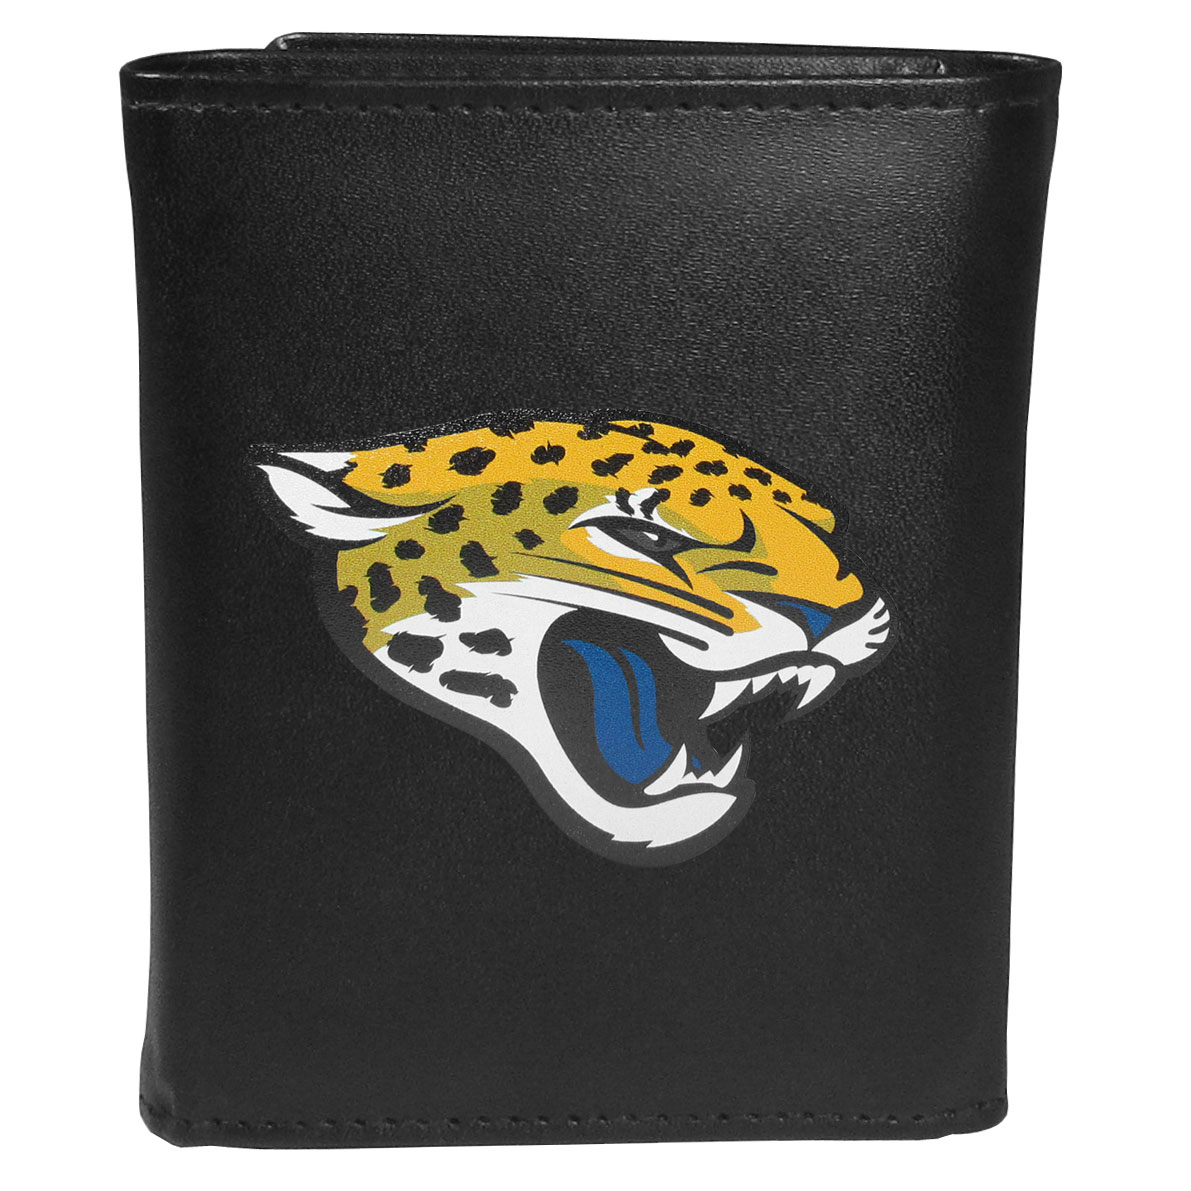 Jacksonville Jaguars Leather Tri-fold Wallet, Large Logo - Our classic fine leather tri-fold wallet is meticulously crafted with genuine leather that will age beautifully so you will have a quality wallet for years to come. This is fan apparel at its finest. The wallet is packed with organizational  features; lots of credit card slots, large billfold pocket, and a window ID slot. The front of the wallet features an extra large Jacksonville Jaguars printed logo.